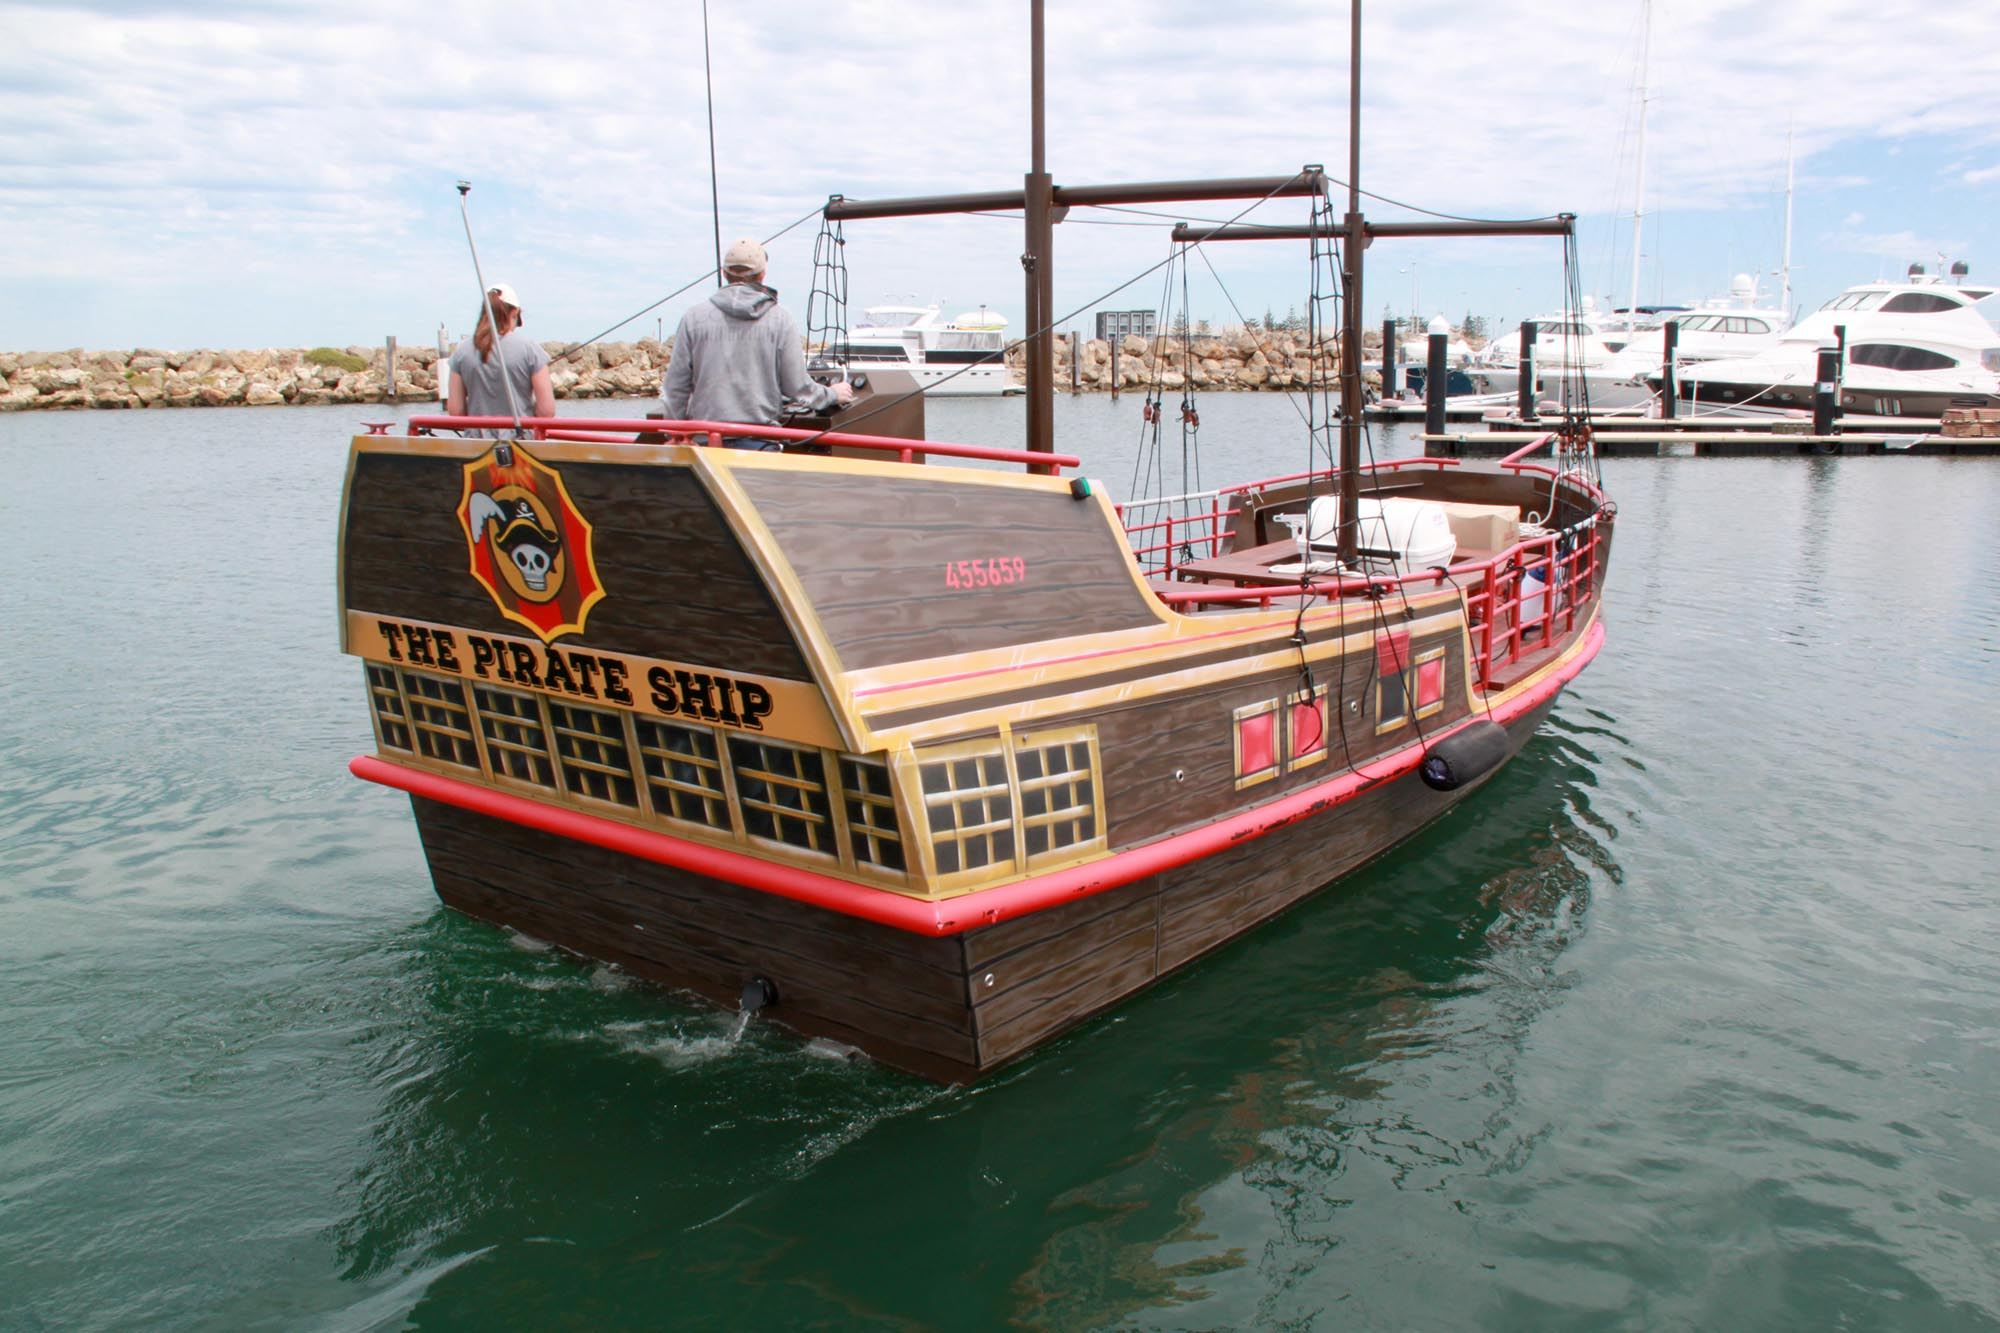 The Pirate Ship – Tourist Vessel